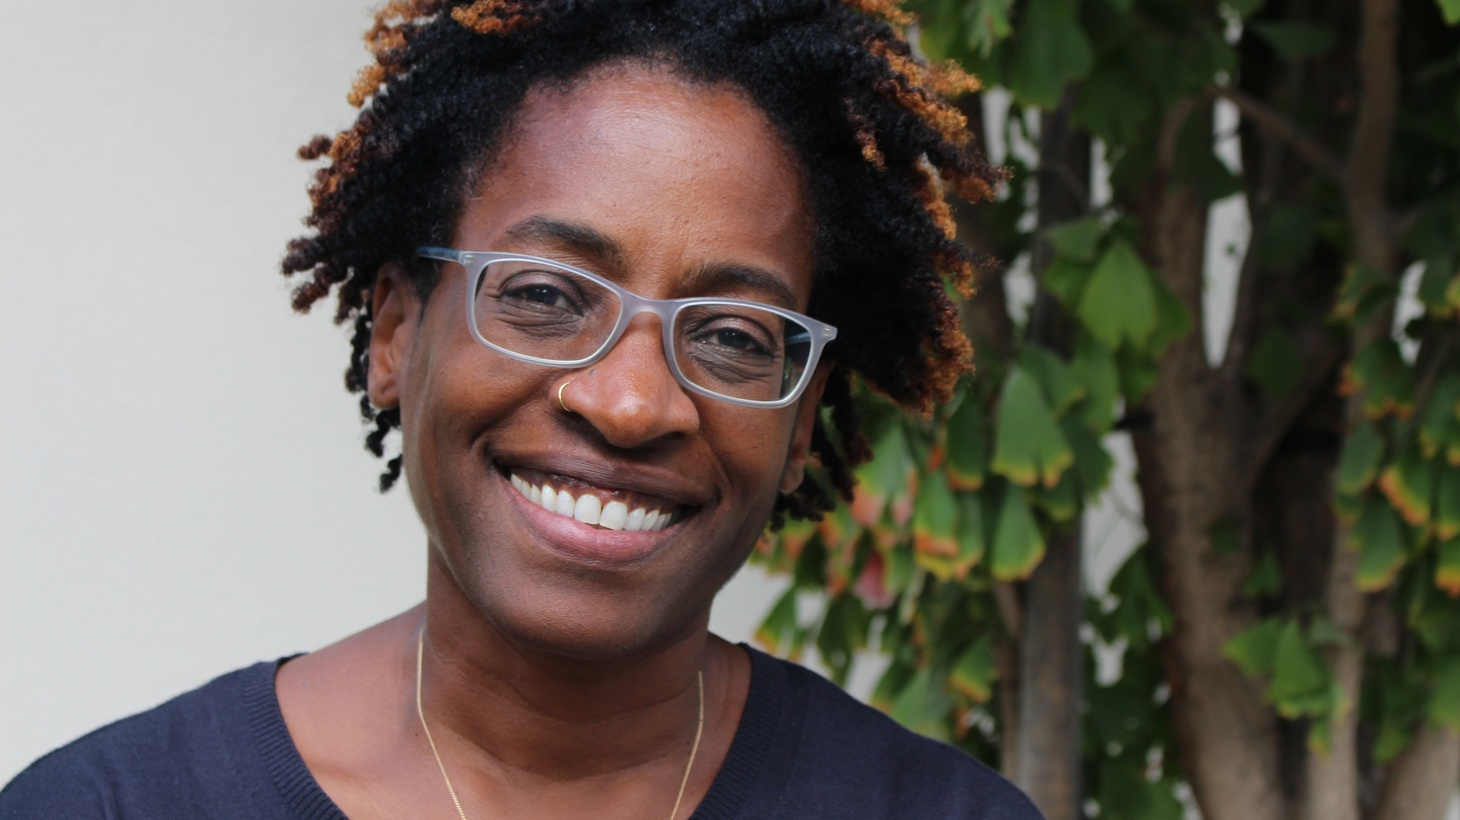 Another Brooklyn, award-winning Young Adult novelist Jacqueline Woodson's first novel for adults in twenty years, tells the story of childhood friends as they grow into women.